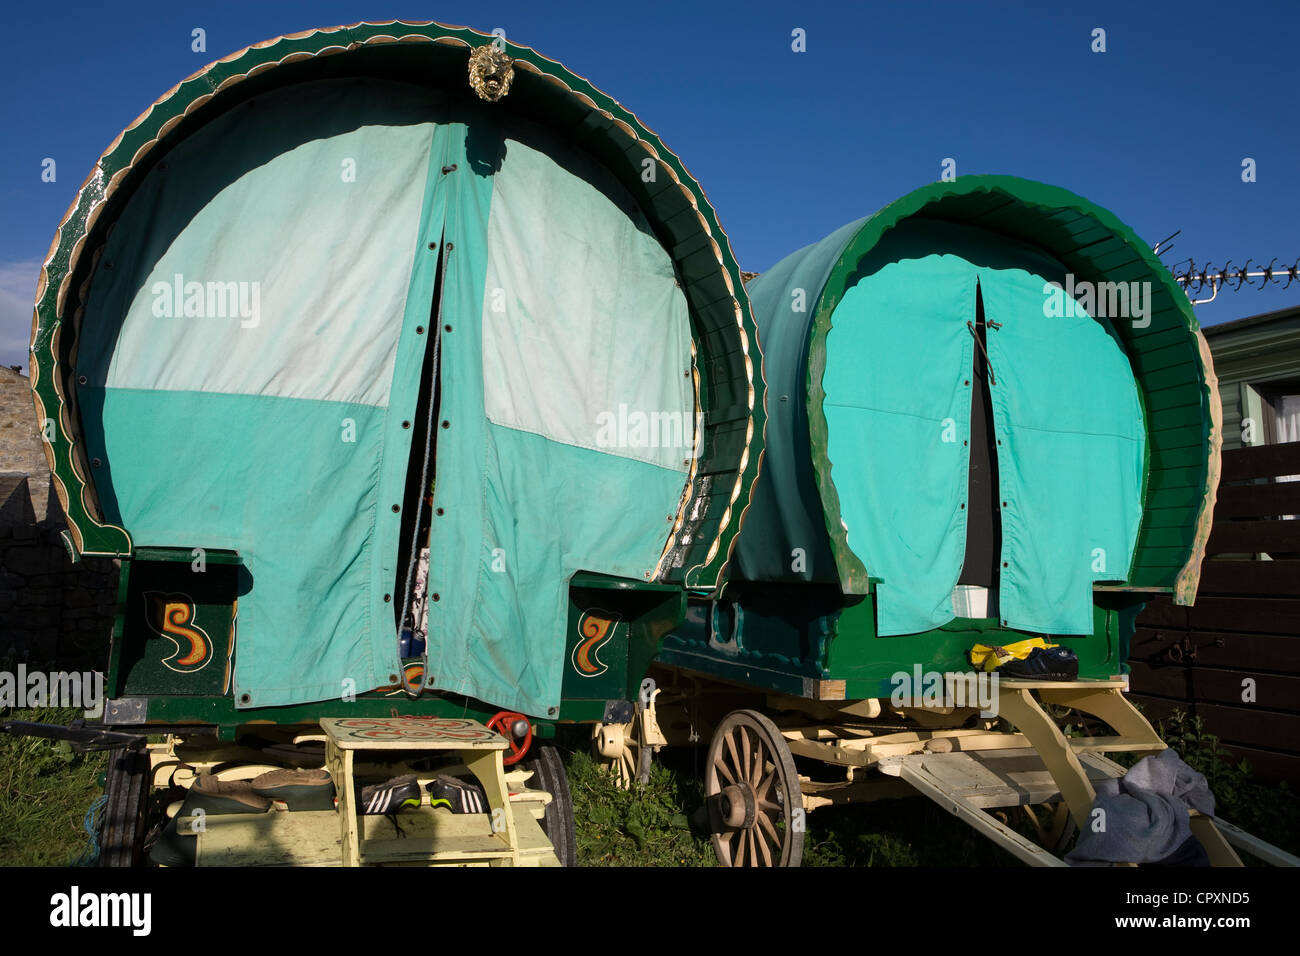 Horses, Wagons and equipment belonging to travelers attending the annual Appleby horse fair, Cumbria Uk Stock Photo